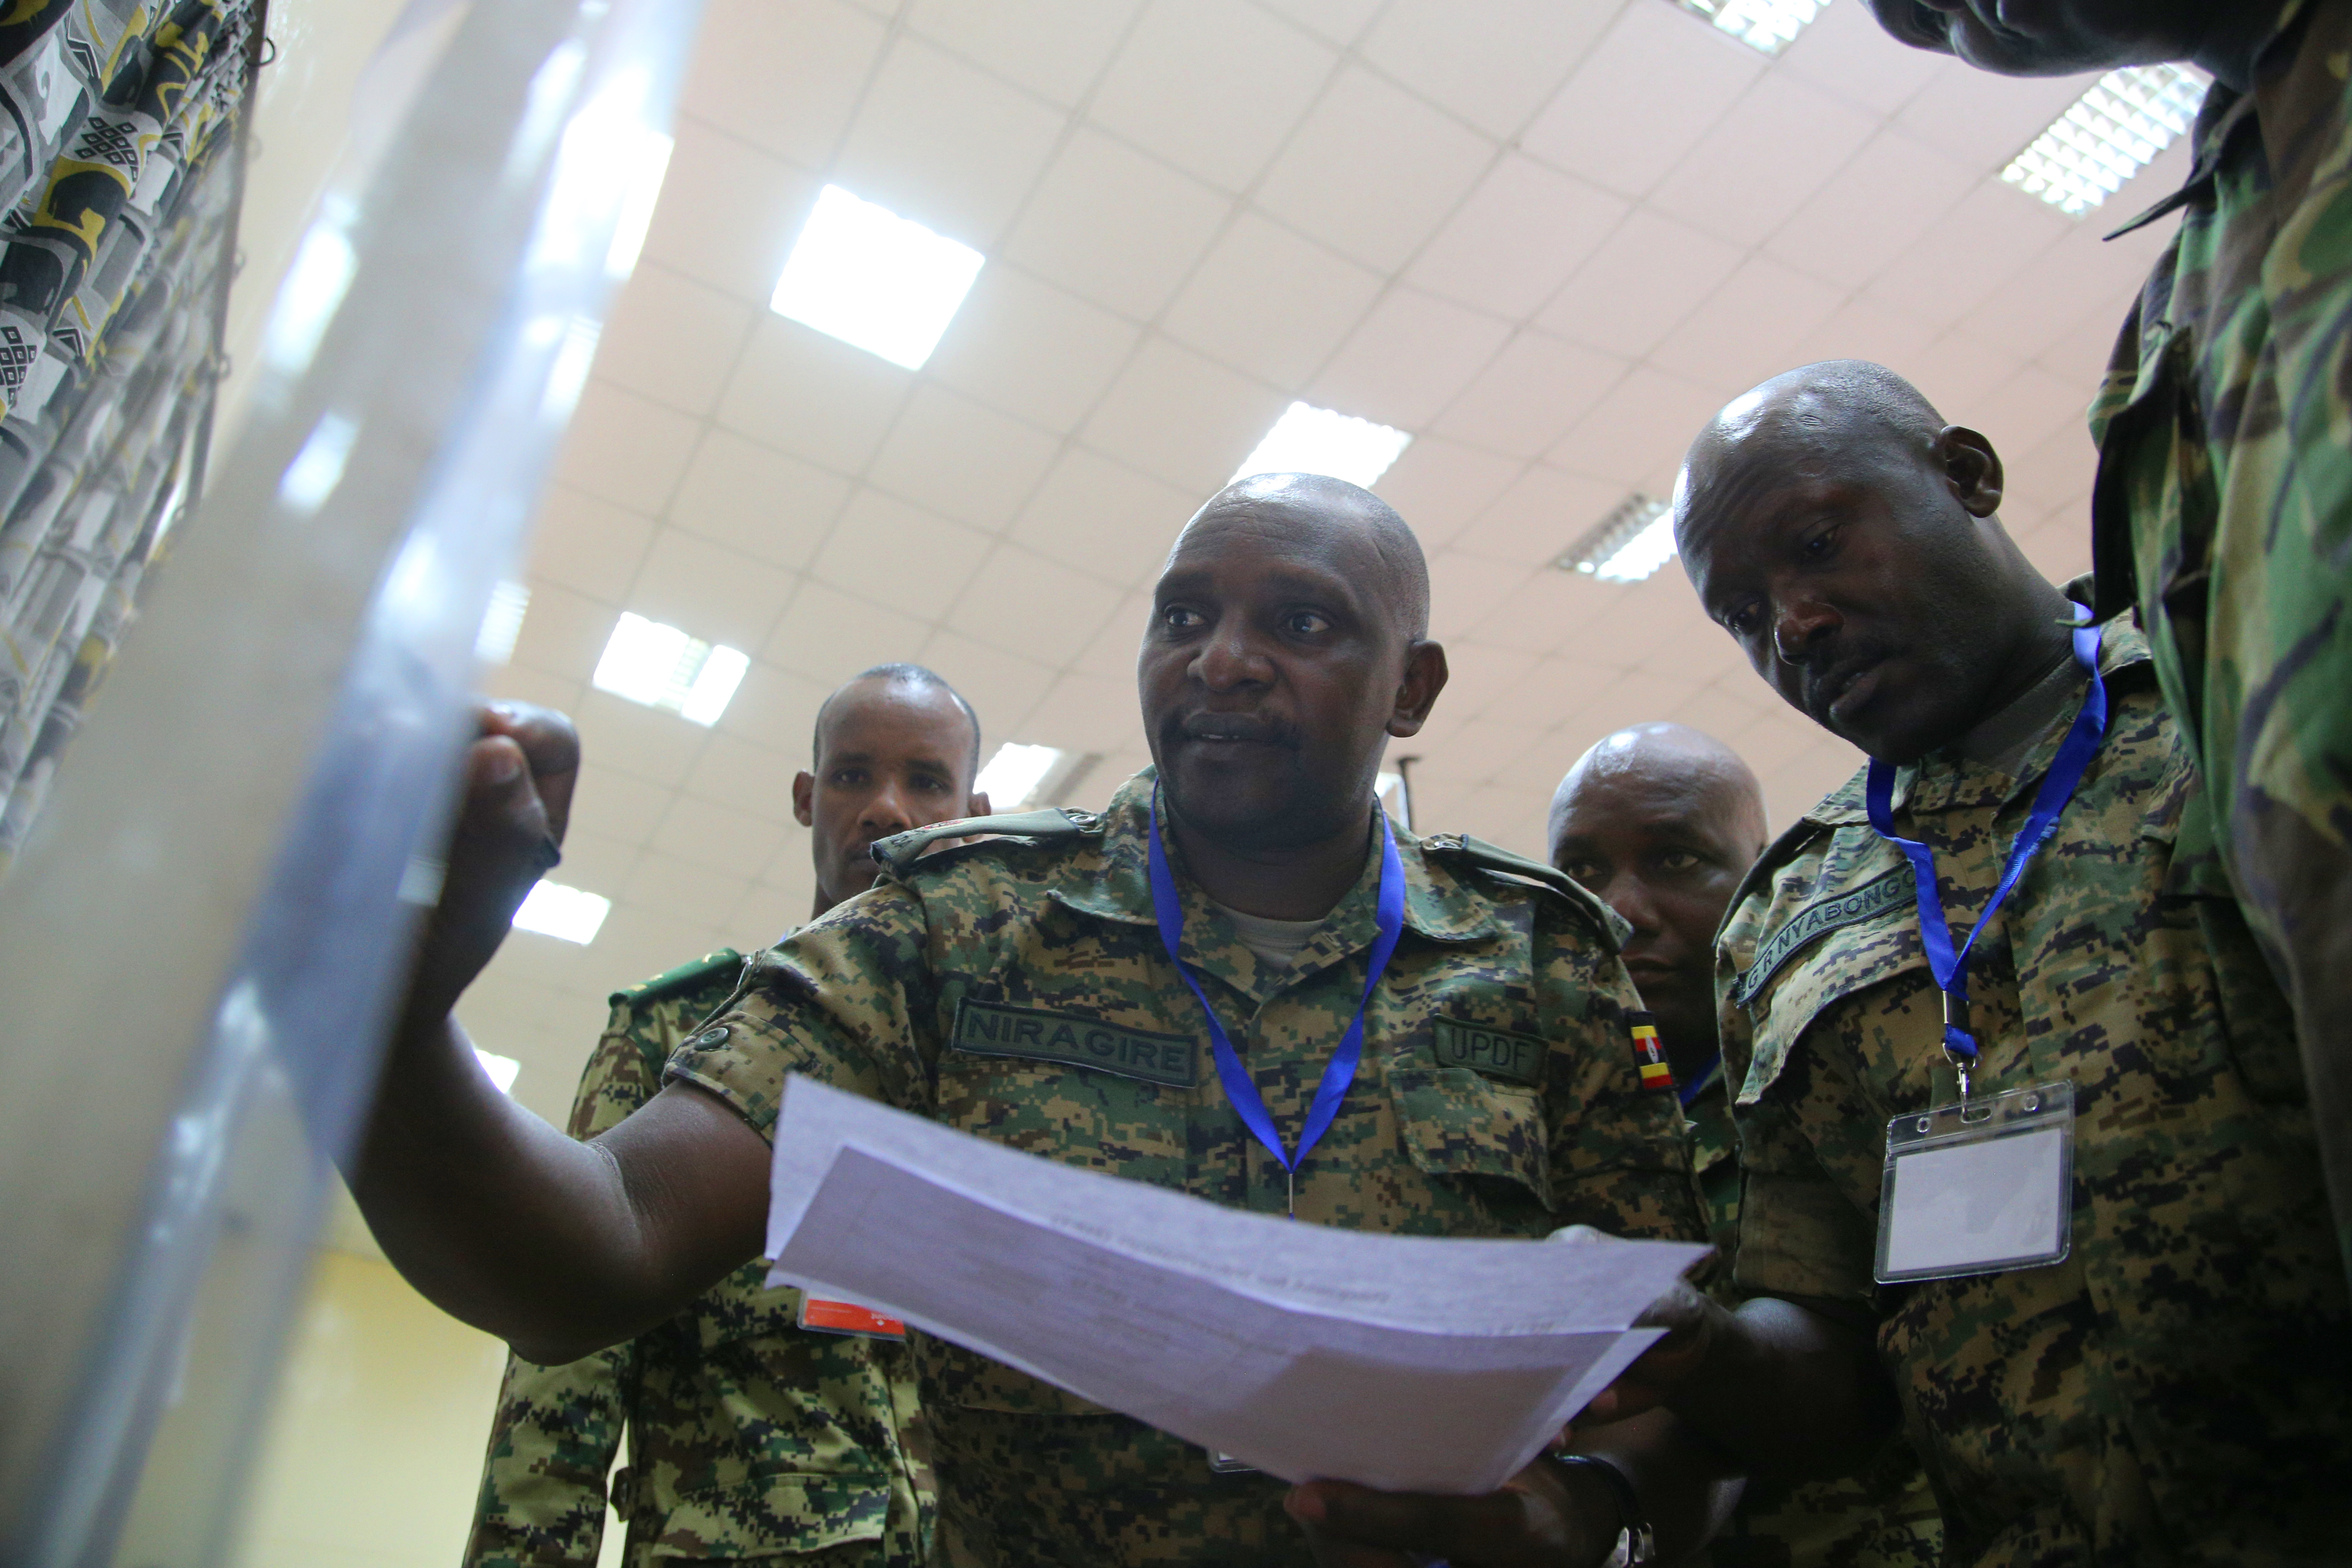 Uganda People's Defense Force (UPDF) Maj. Julius Niragire and UPDF Maj. Godfrey Nyabongo plan and prepare Civil-Military Cooperation staff responses to a simulated humanitarian crisis during the command post exercise of the Africa Contingency Operations Training and Assistance force headquarters training program held at the Humanitarian Peace Support School in Nairobi, Kenya, March 9, 2017. The five-week course was facilitated by the U.S. Department of State and is designed to improve Africa's military capabilities by providing selected training necessary for multinational peace support operations. (U.S. Army photo by Capt. Alán Ortiz)